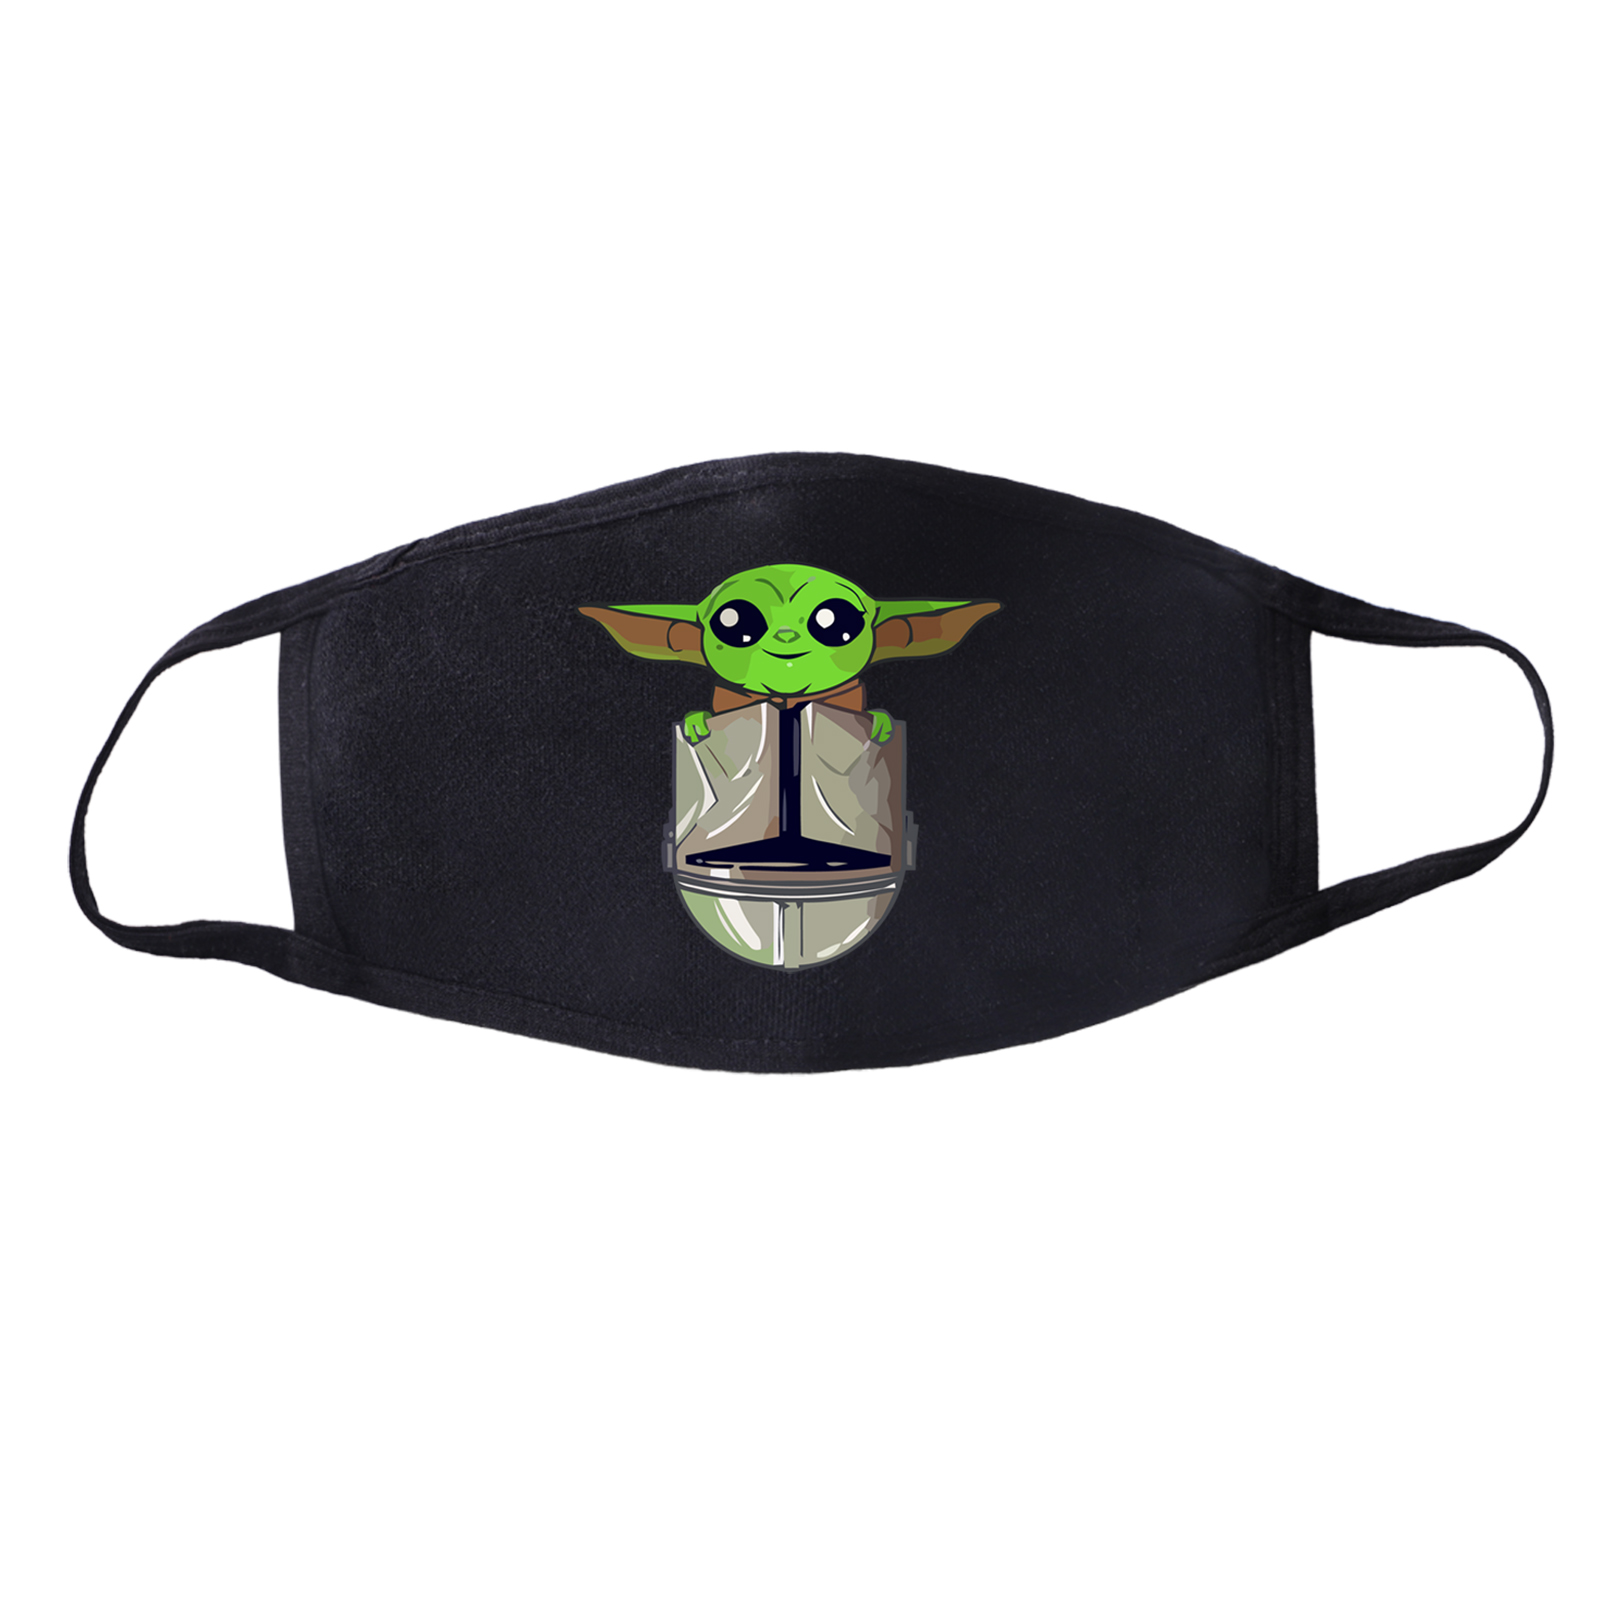 Fashion Star Wars Masks The Mandalorian Masks Respirator Men Funny Baby Yoda No Coffee No Workee Mask Cotton Dust Black Masks